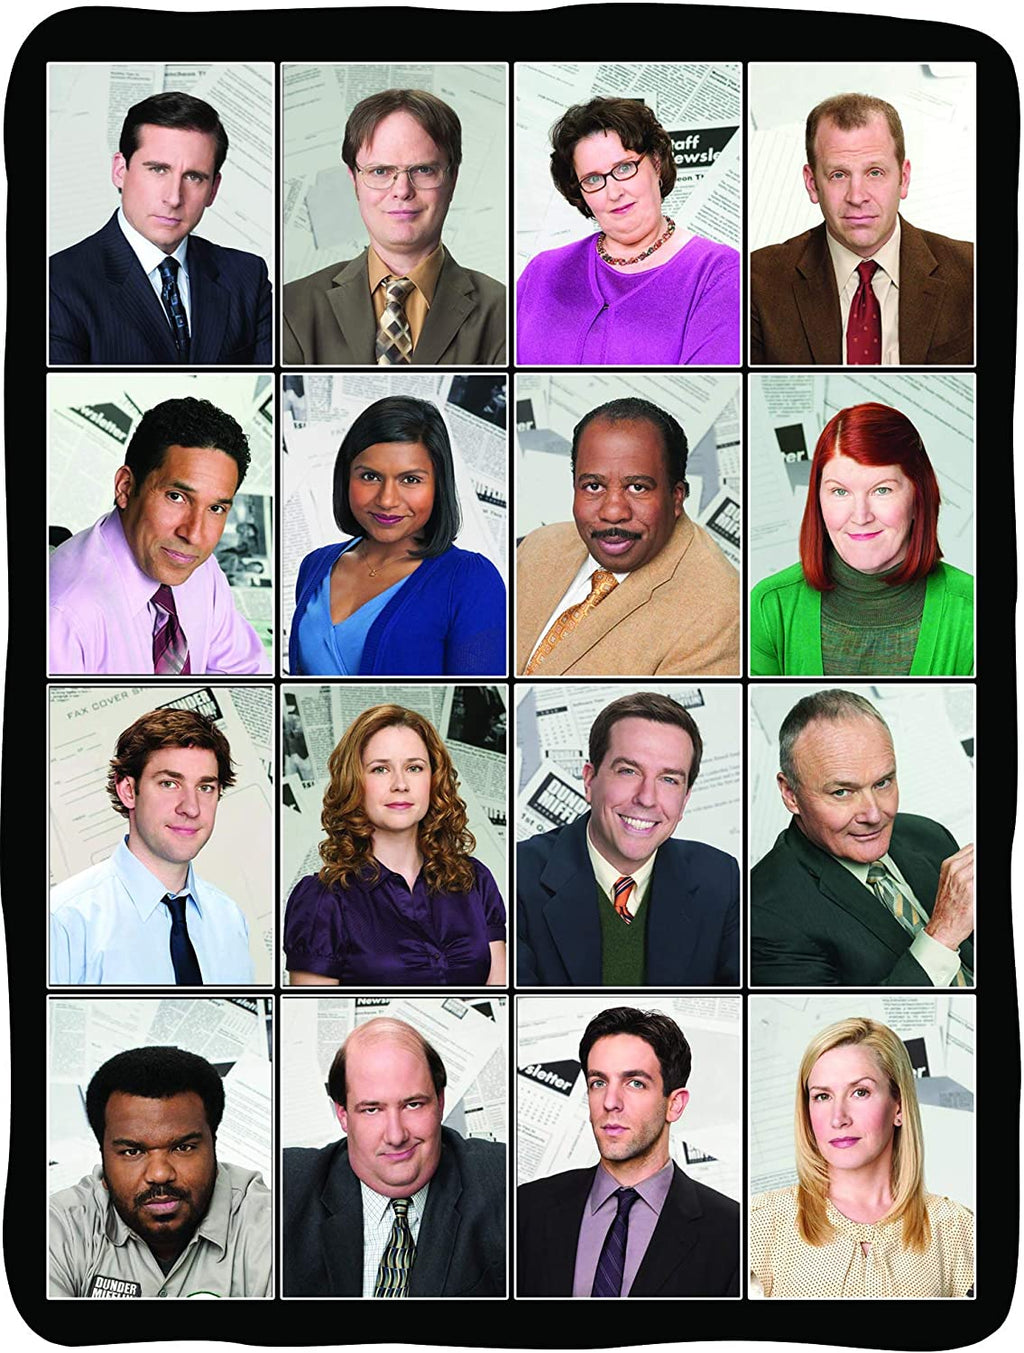 Fleece blanket featuring the cast of The Office